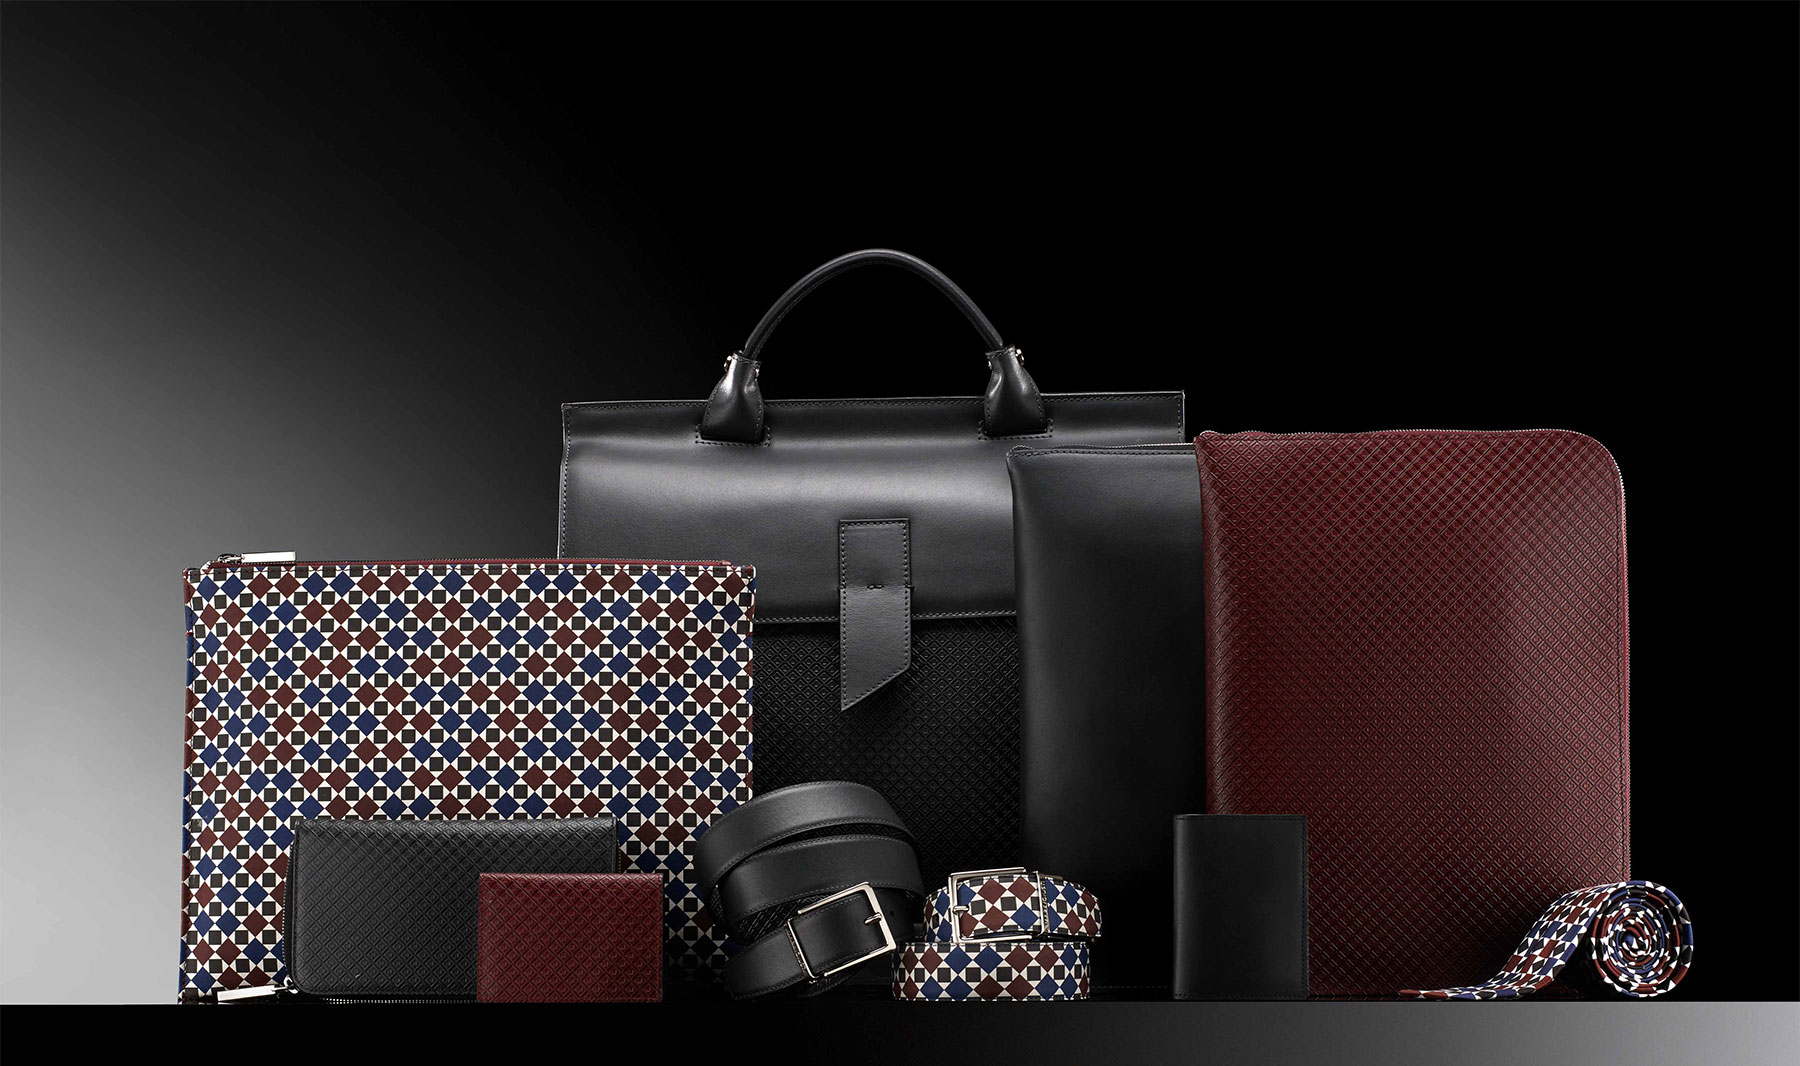 The London Calling Collection from Matk/Guisti